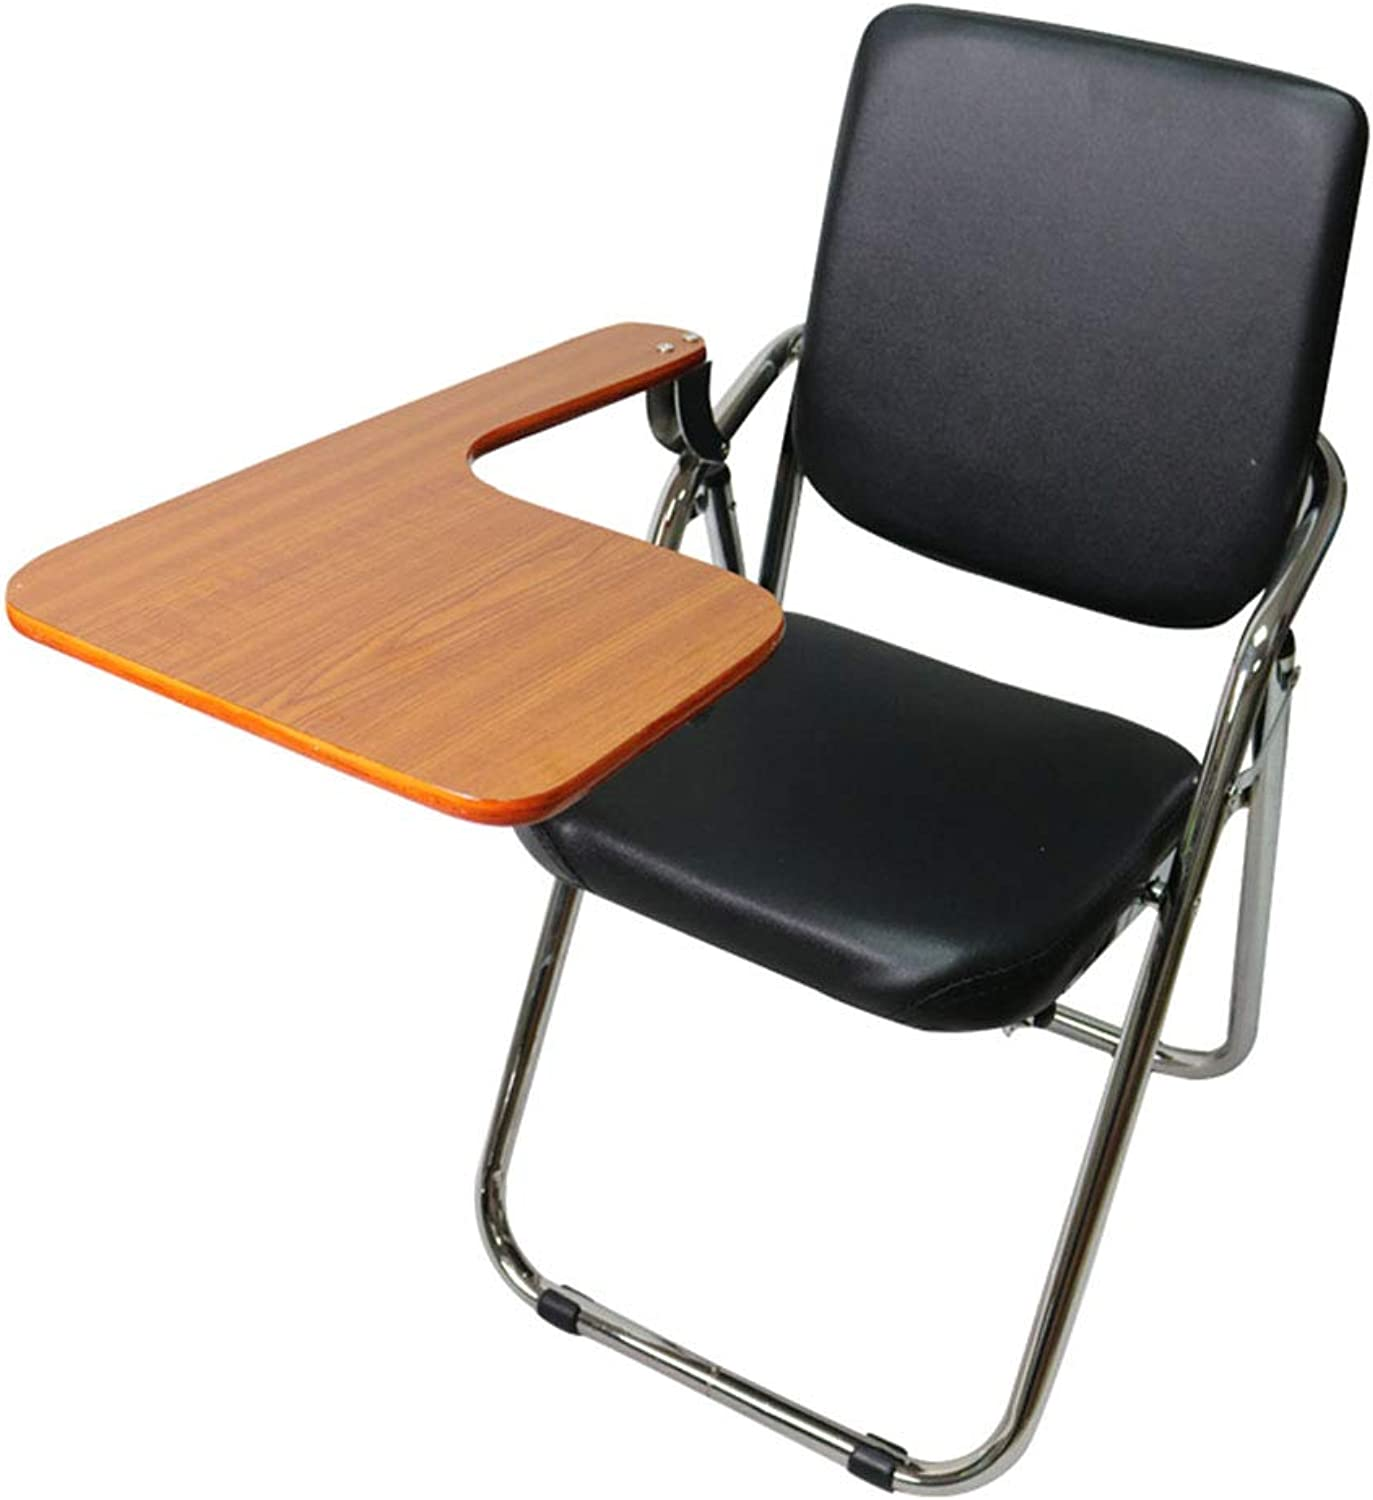 Training Chair, Folding Board with Writing Board Free Inssizetion Meeting Staff Student Reporter Office Chair Convenient Environmentally Friendly Waterproof and Clean